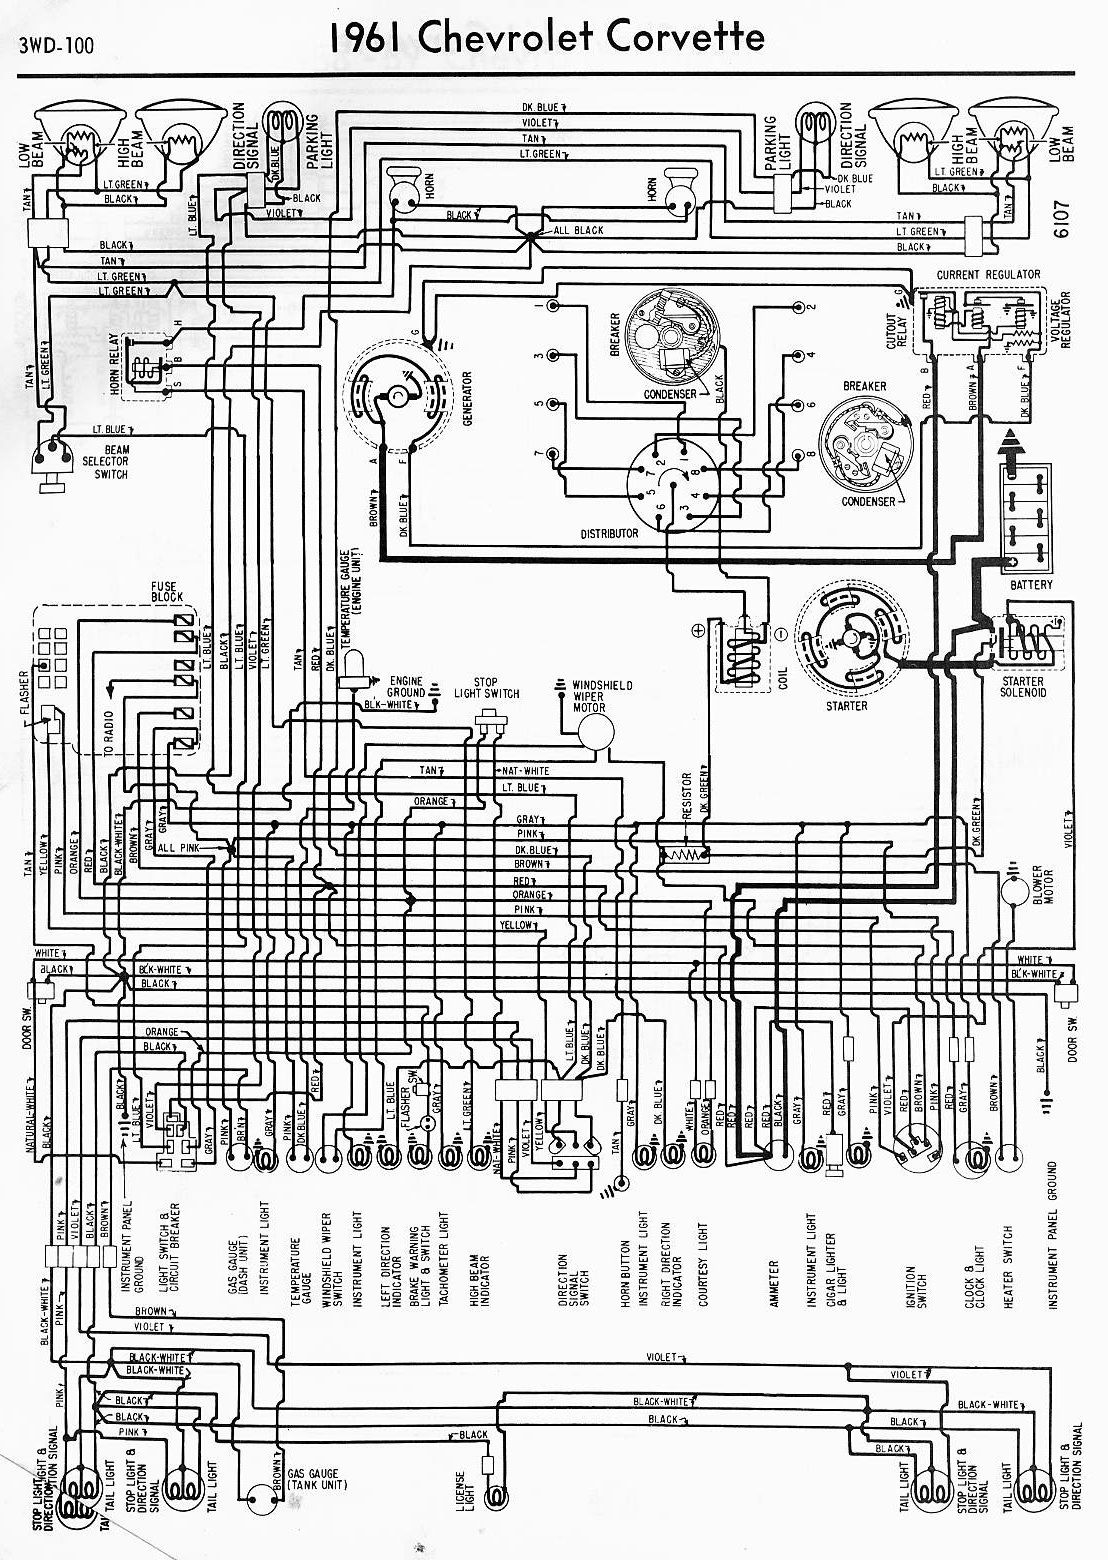 small resolution of 1978 corvette wiring harness wiring diagram blog 1978 corvette wiring harness